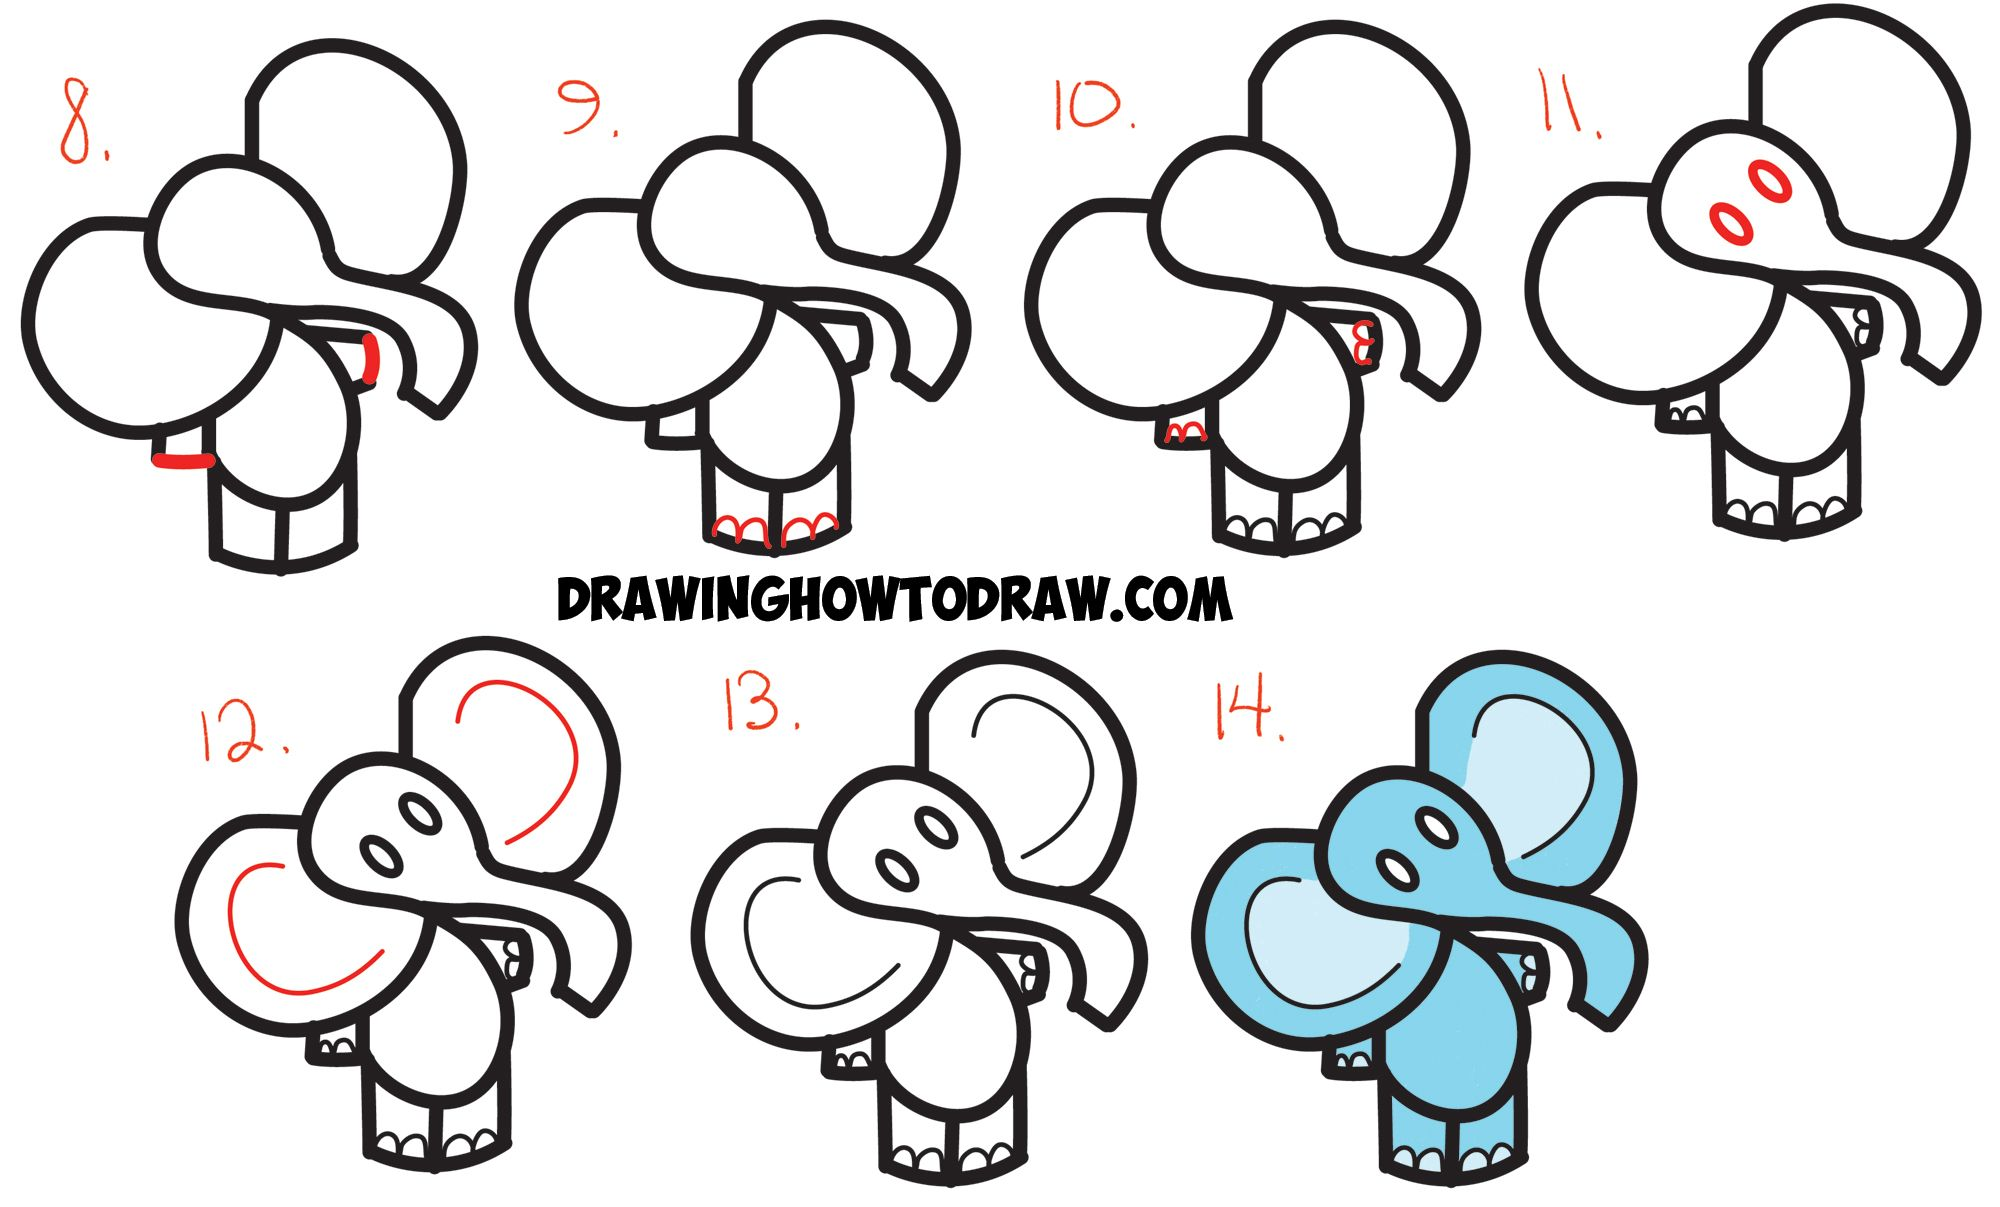 Uncategorized Easy Step By Step Drawing learn how to draw cute cartoon elephant from the dollar sign simple steps drawing lesson